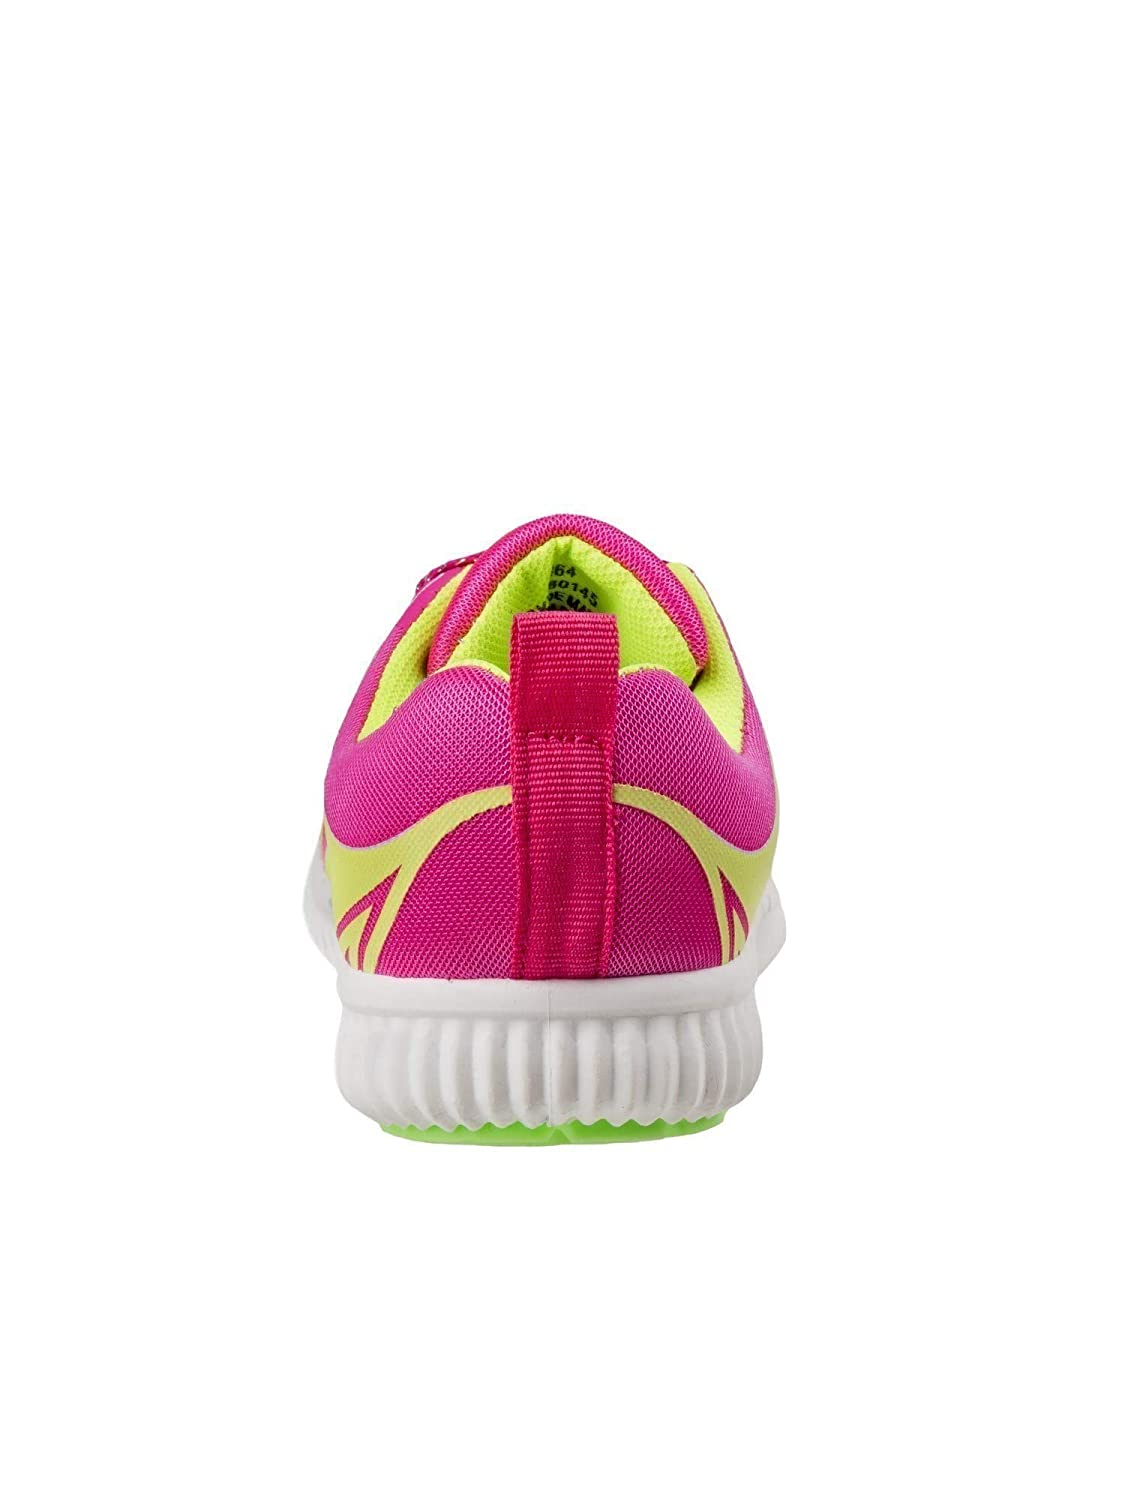 Josmo Little Girls Fuchsia Lime Lace-Up Fashion Sneakers 6 Toddler-11 Kids